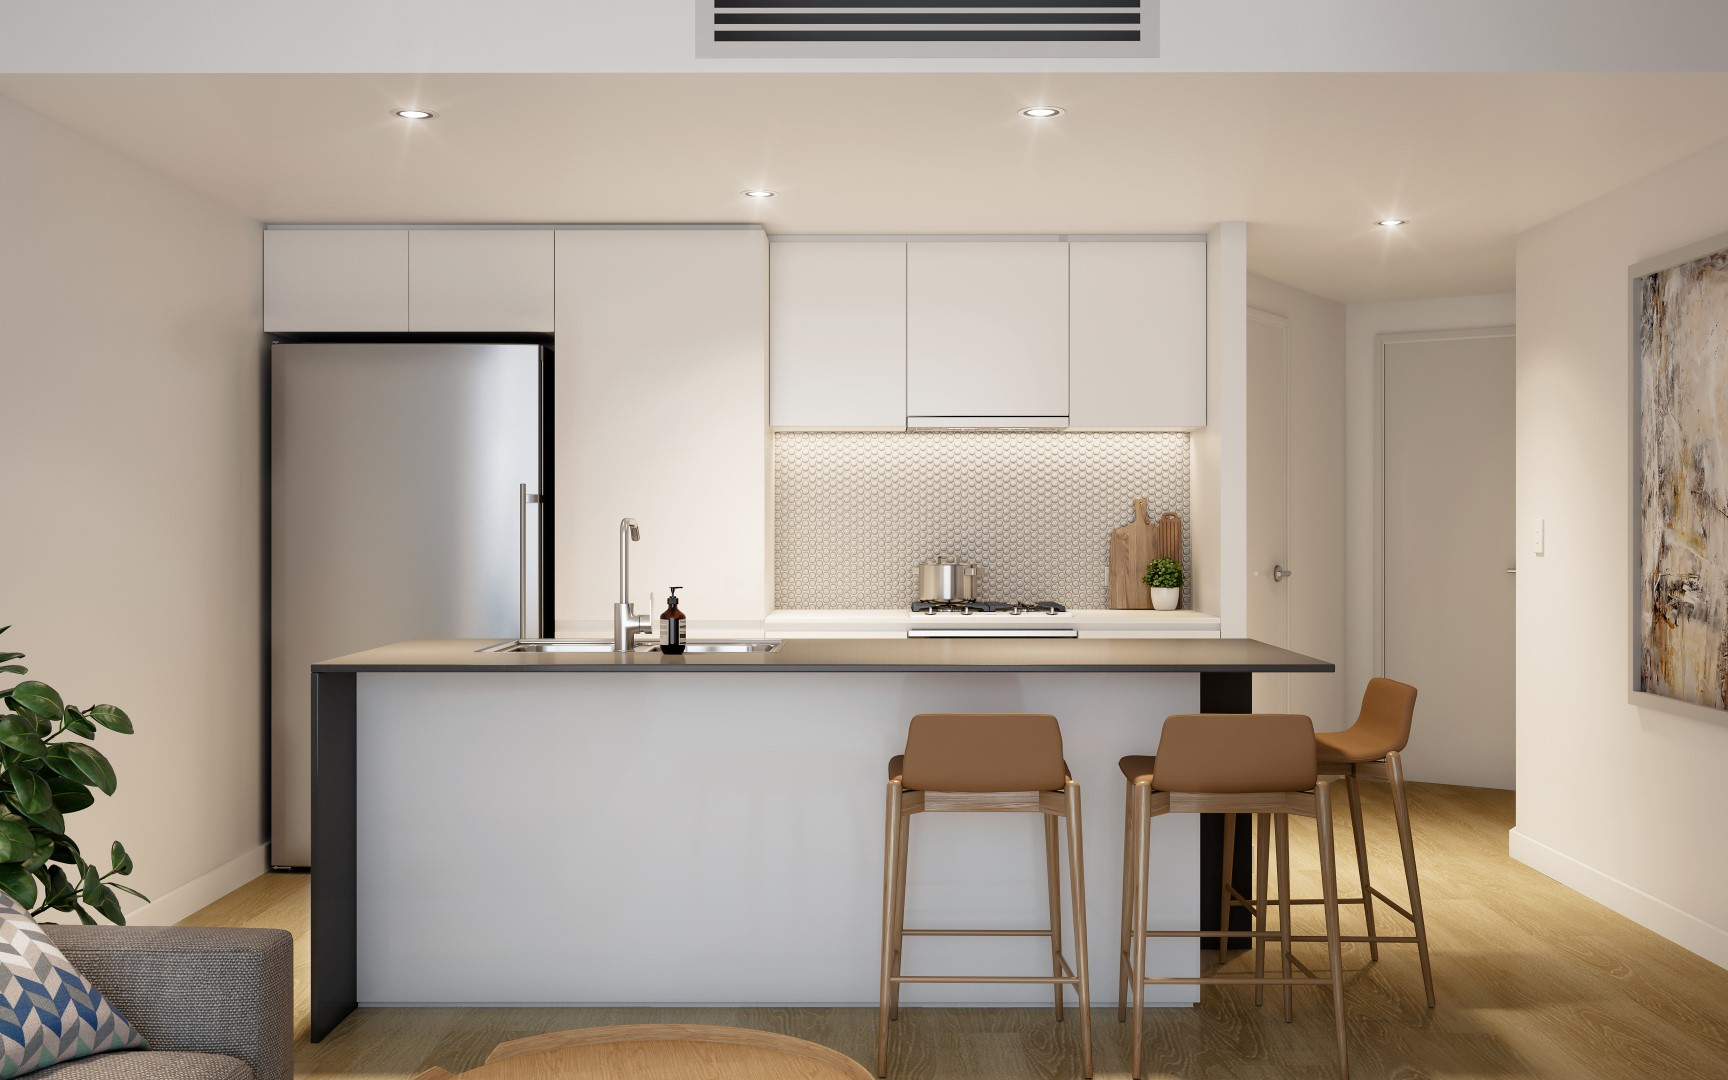 Park Central One apartment elegant kitchen with wooden floor in Woolloongabba Queensland